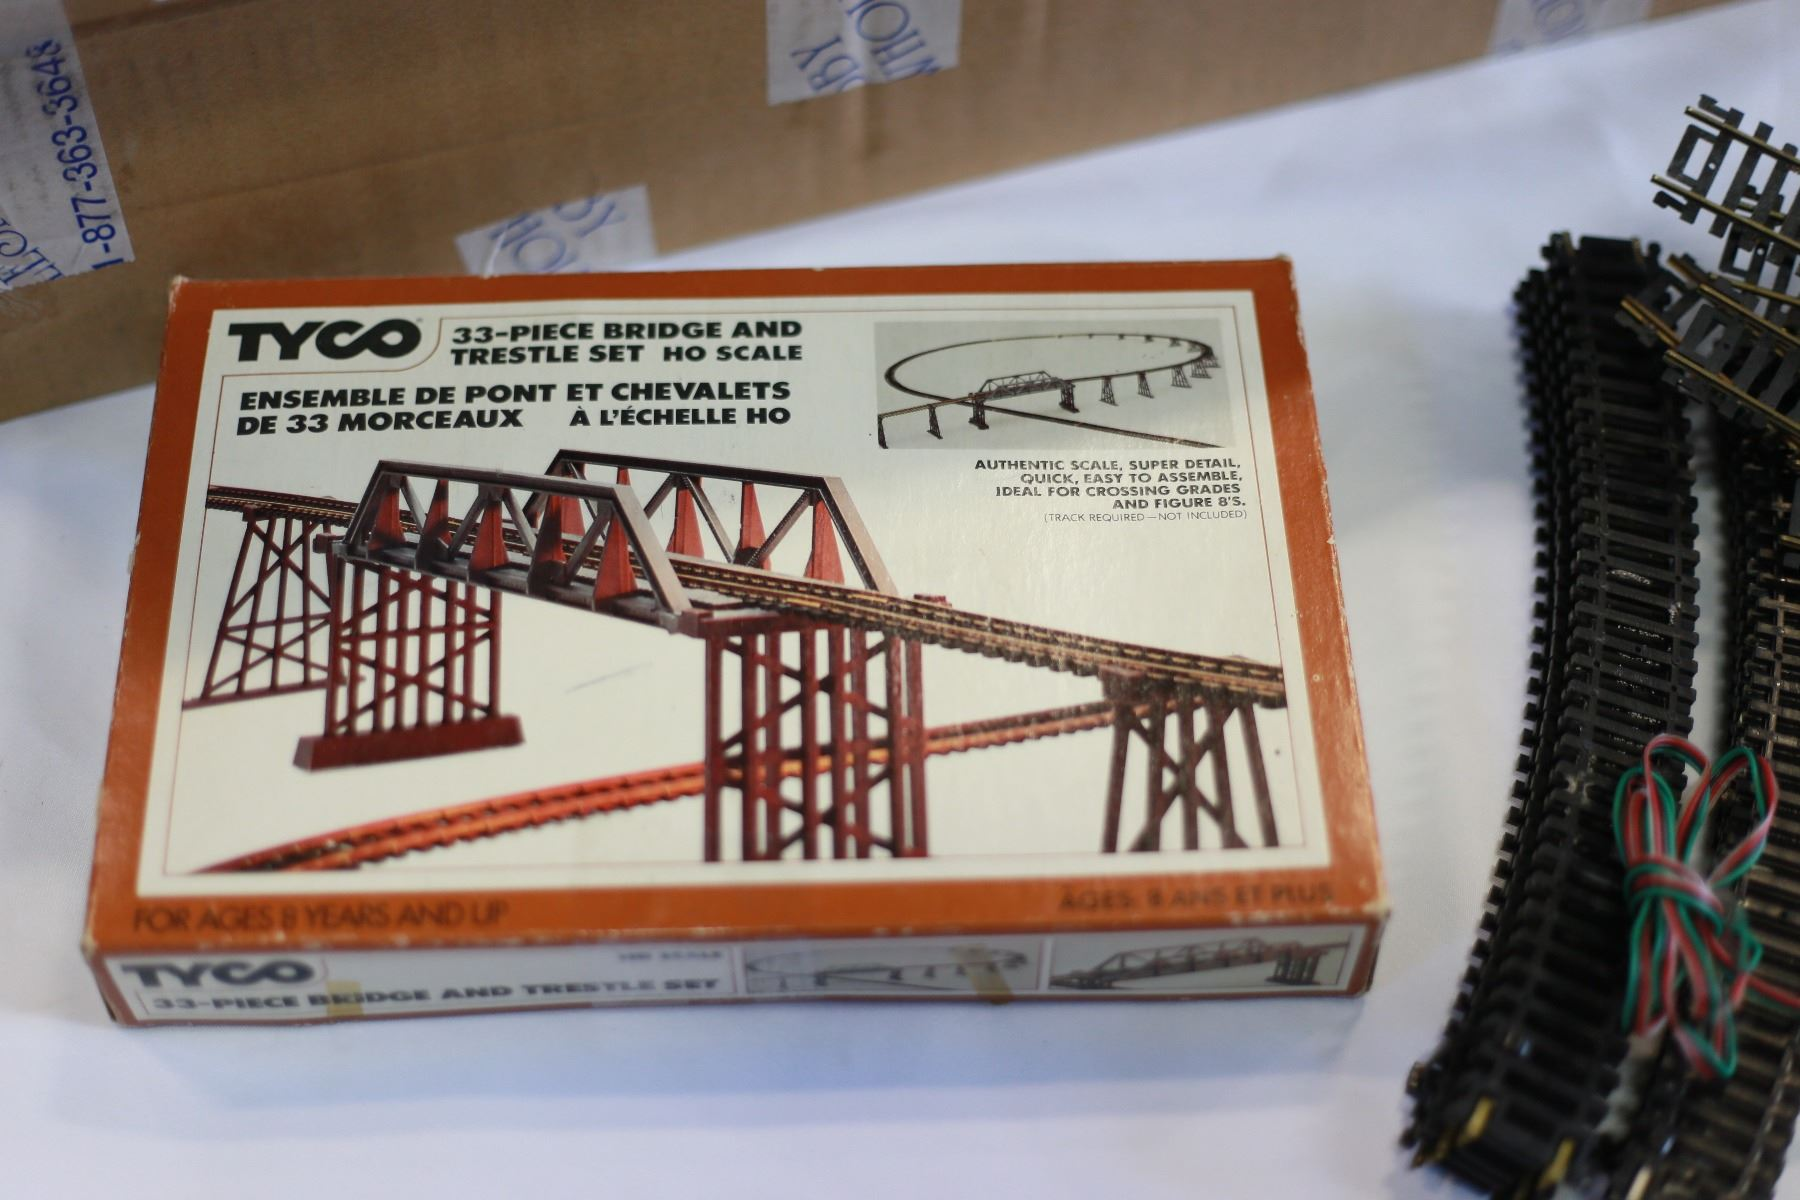 image 3 lot of ho scale train track and bridge  [ 1800 x 1200 Pixel ]